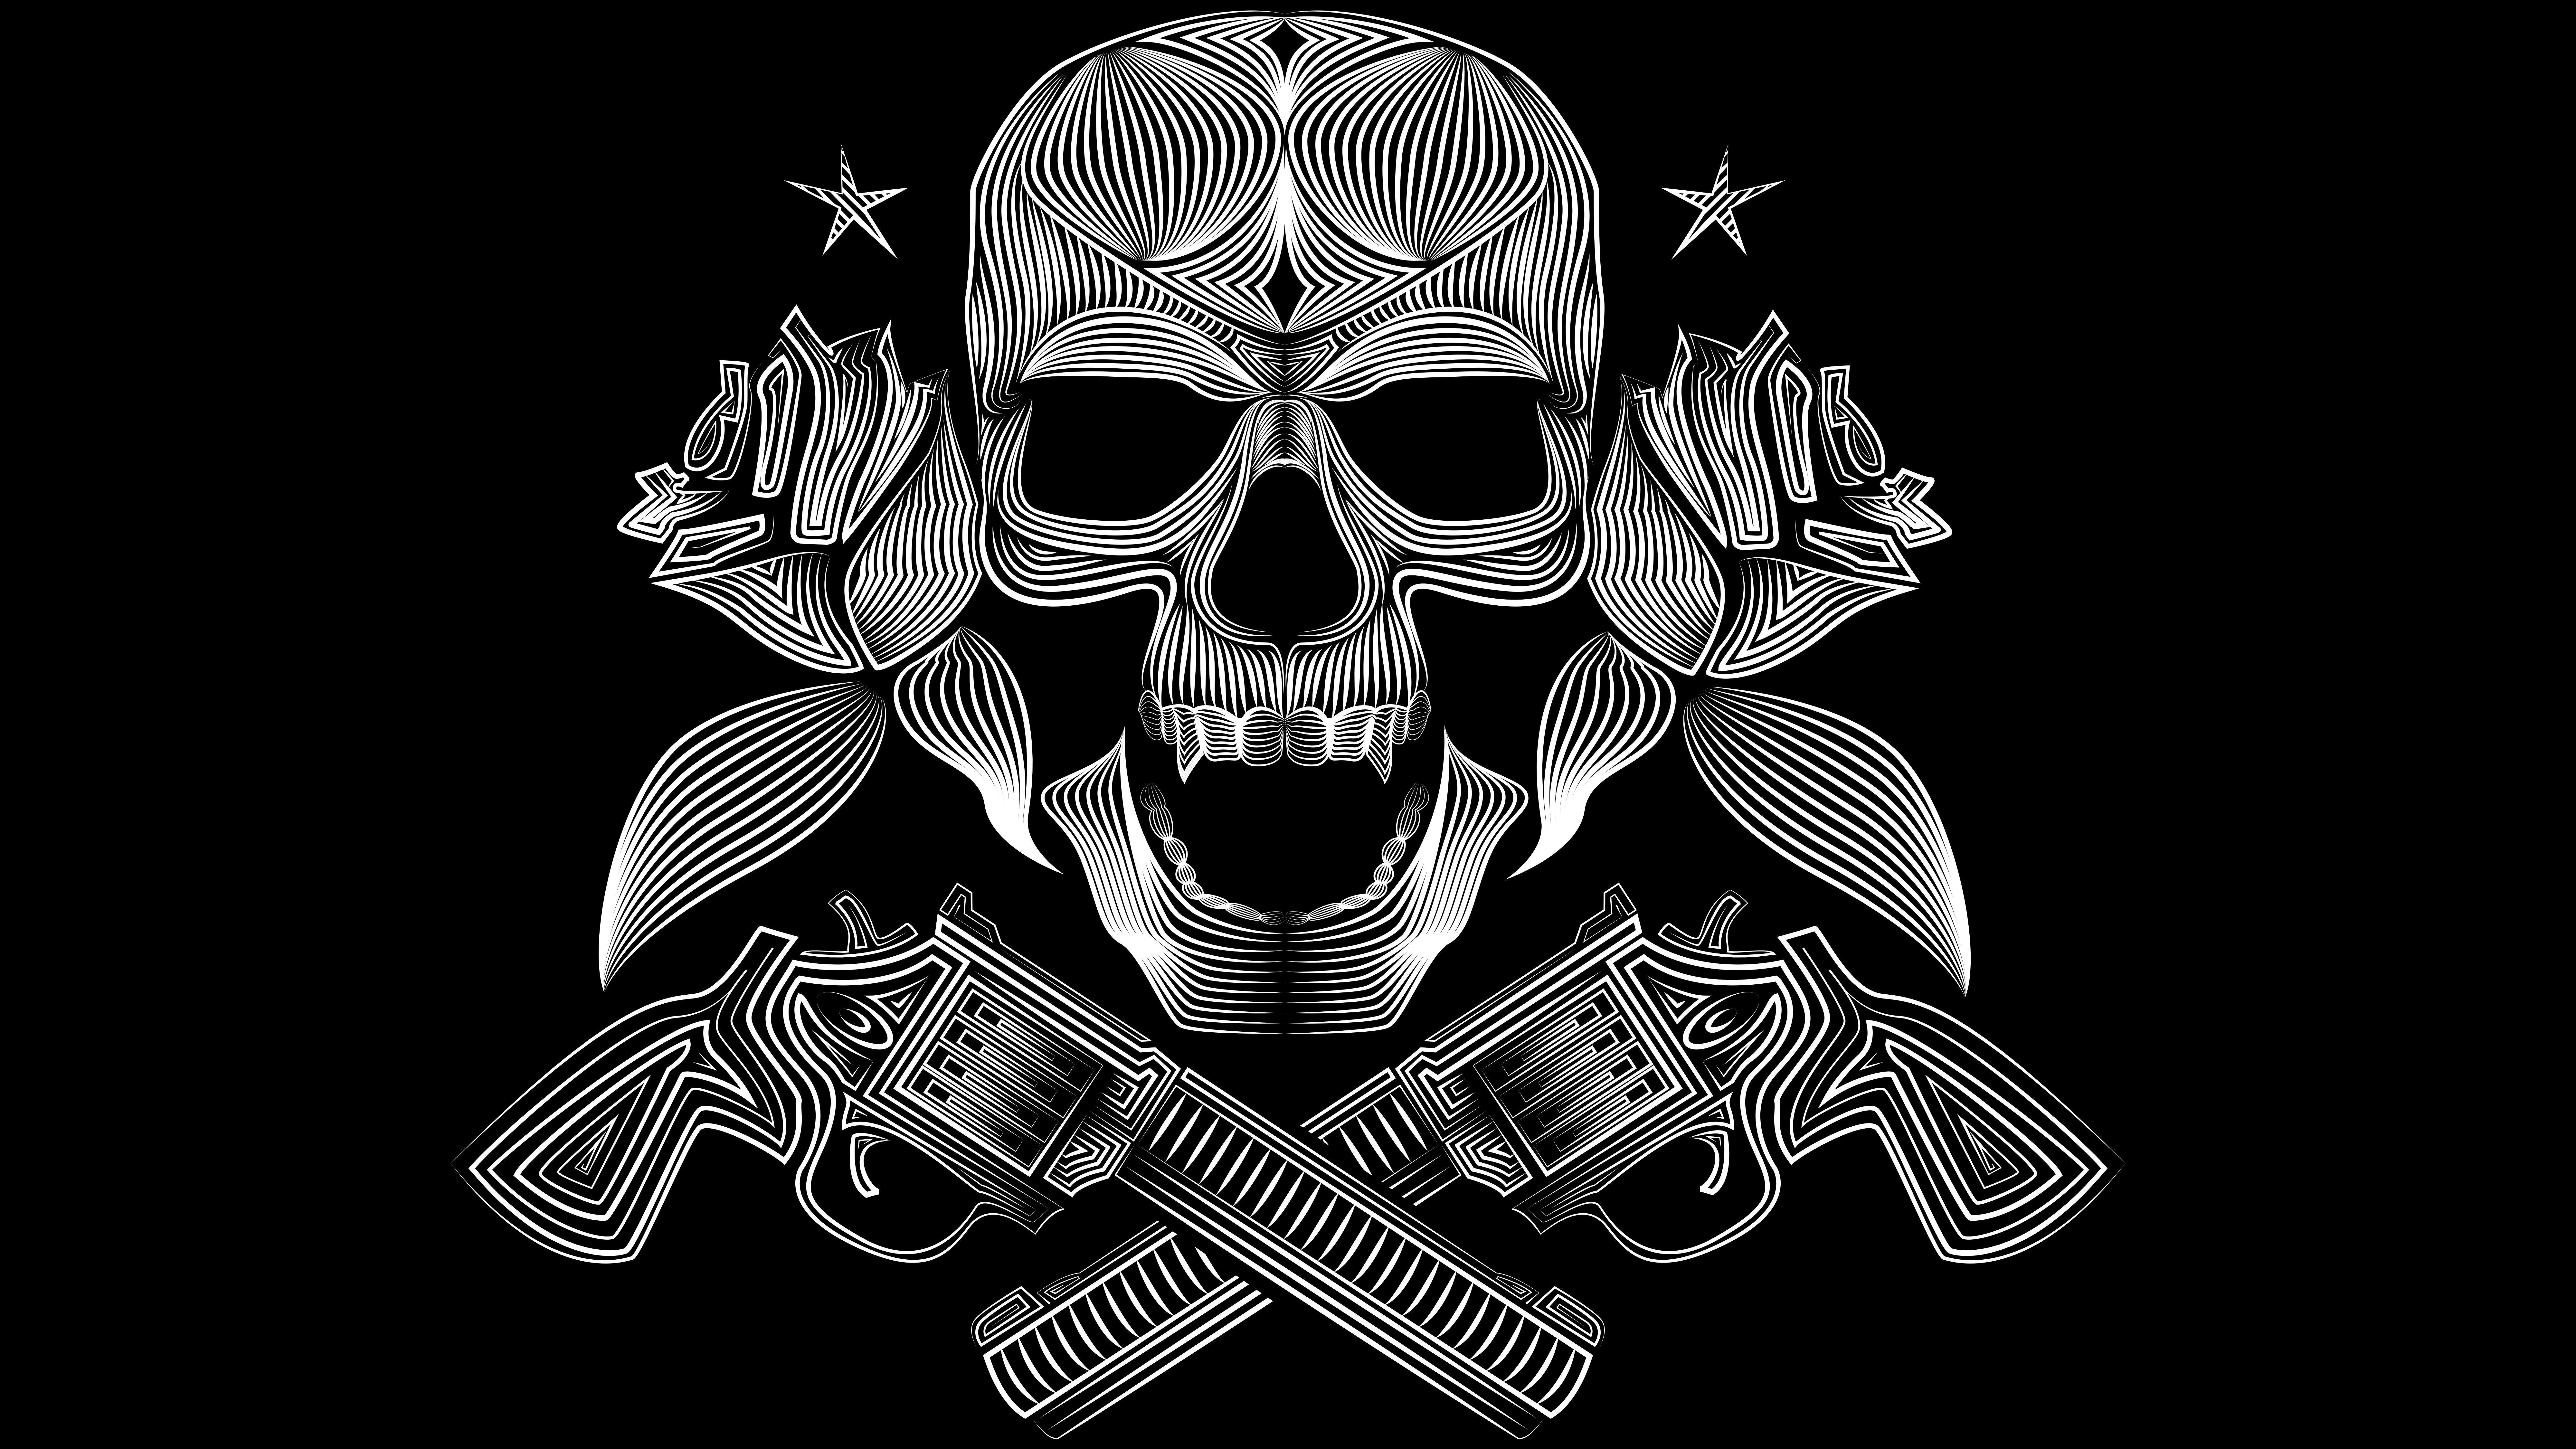 Pirates Gangsters White Vector Black Gun Skull Wallpapers Jpg 8000x4500 Gangsta With Guns Wallpaper